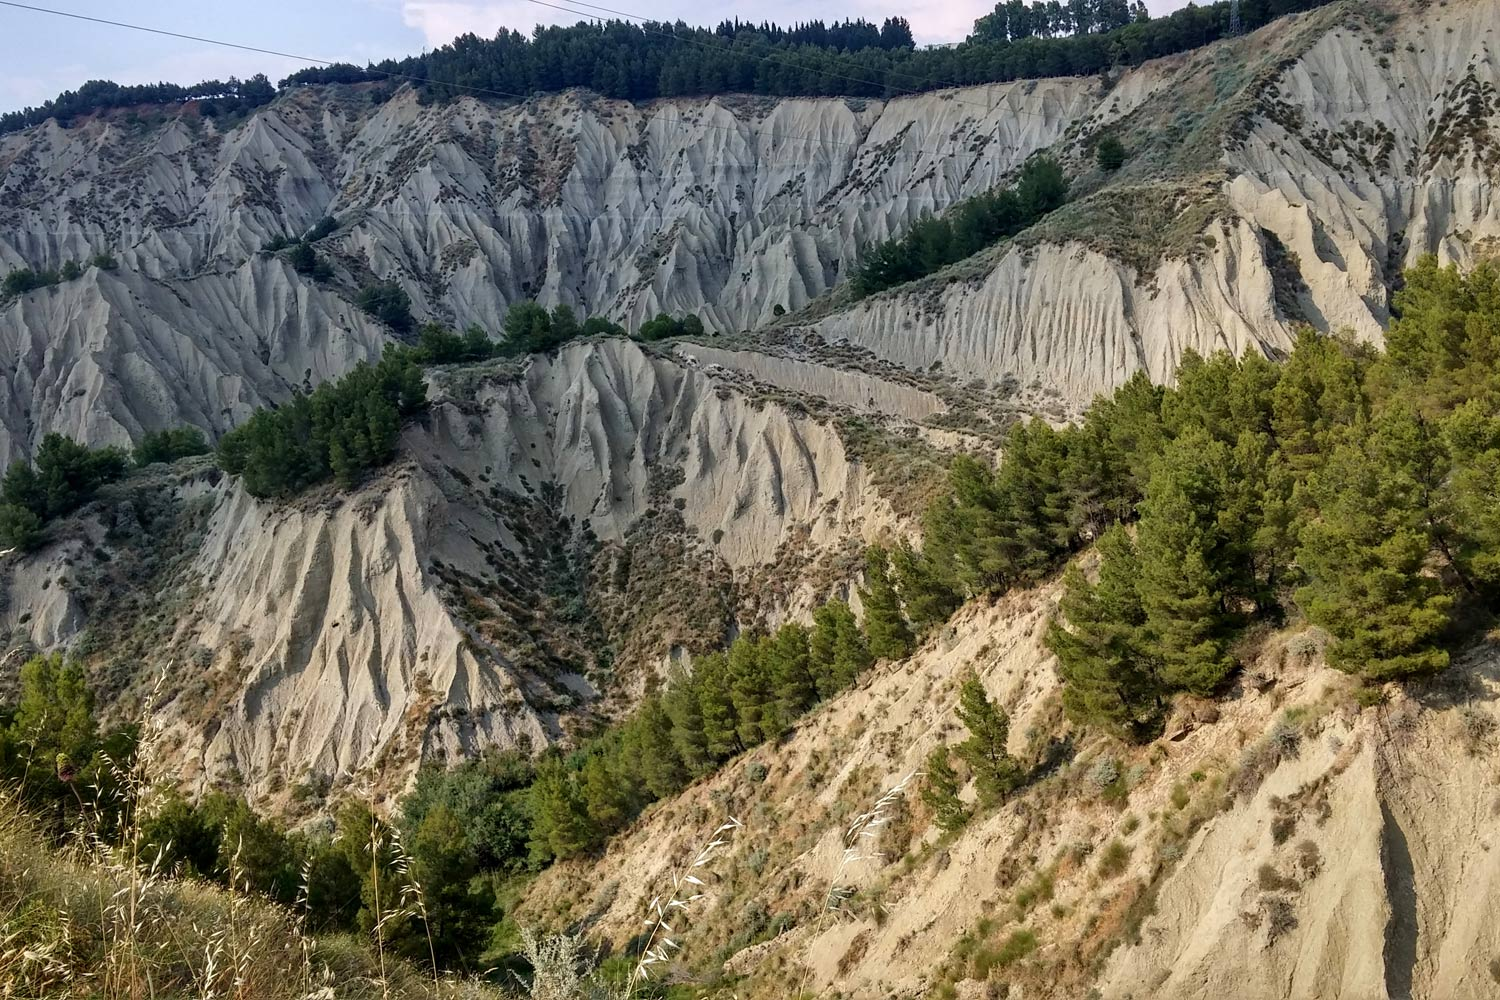 Things to see in Basilicata